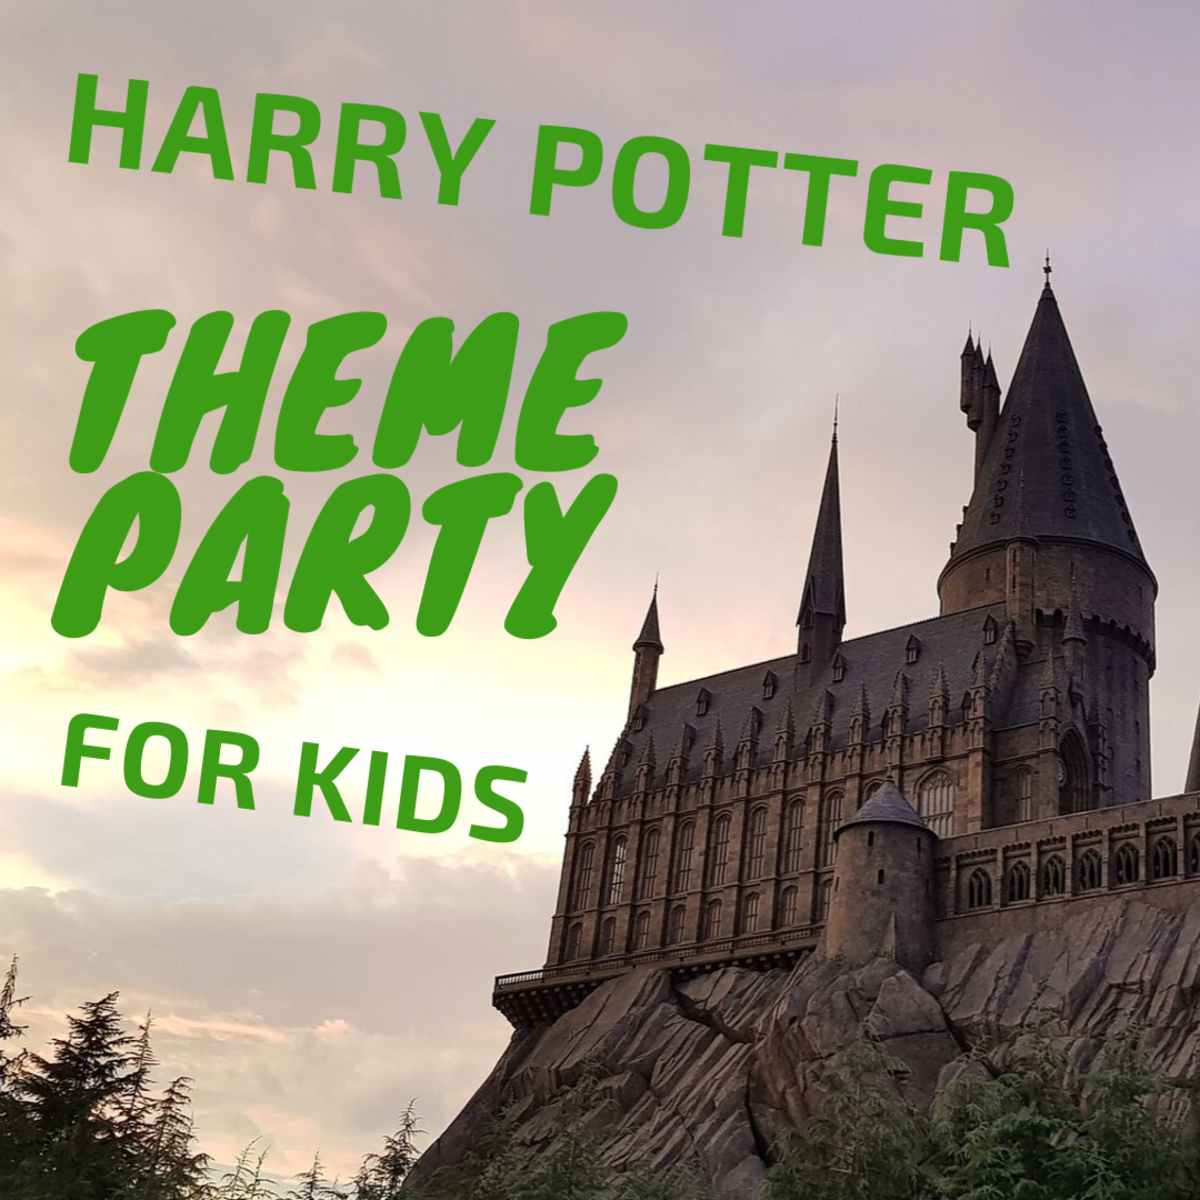 Harry Potter Themed Party Ideas and Games for Children